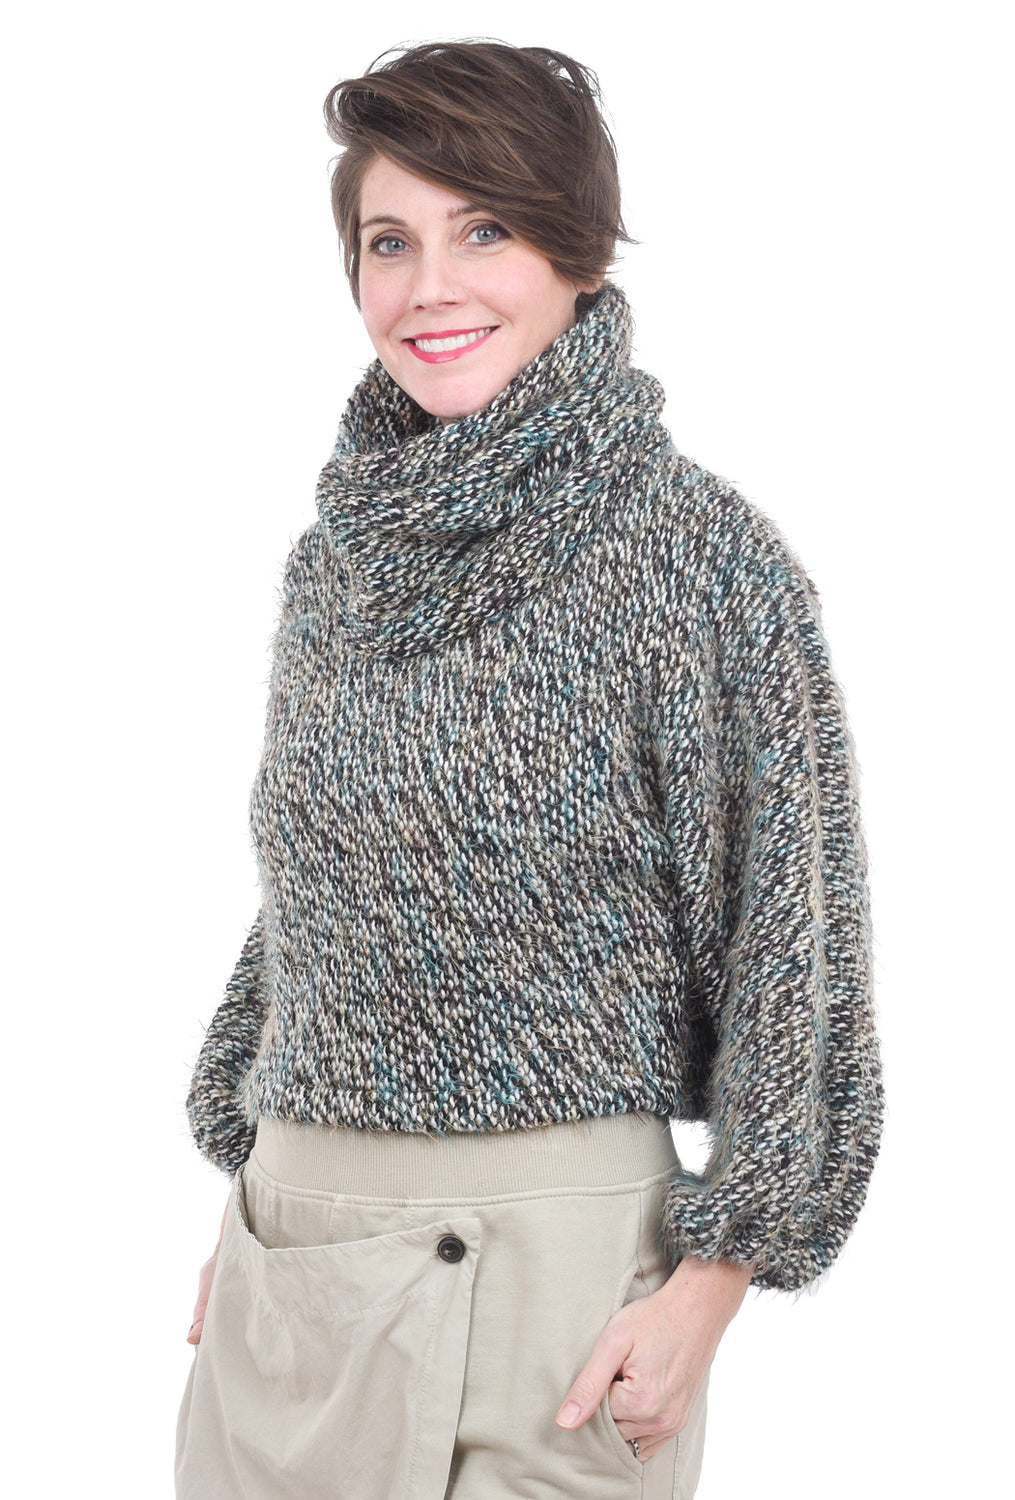 Bryn Walker Sweater Cowl, Teal Multi One Size Teal